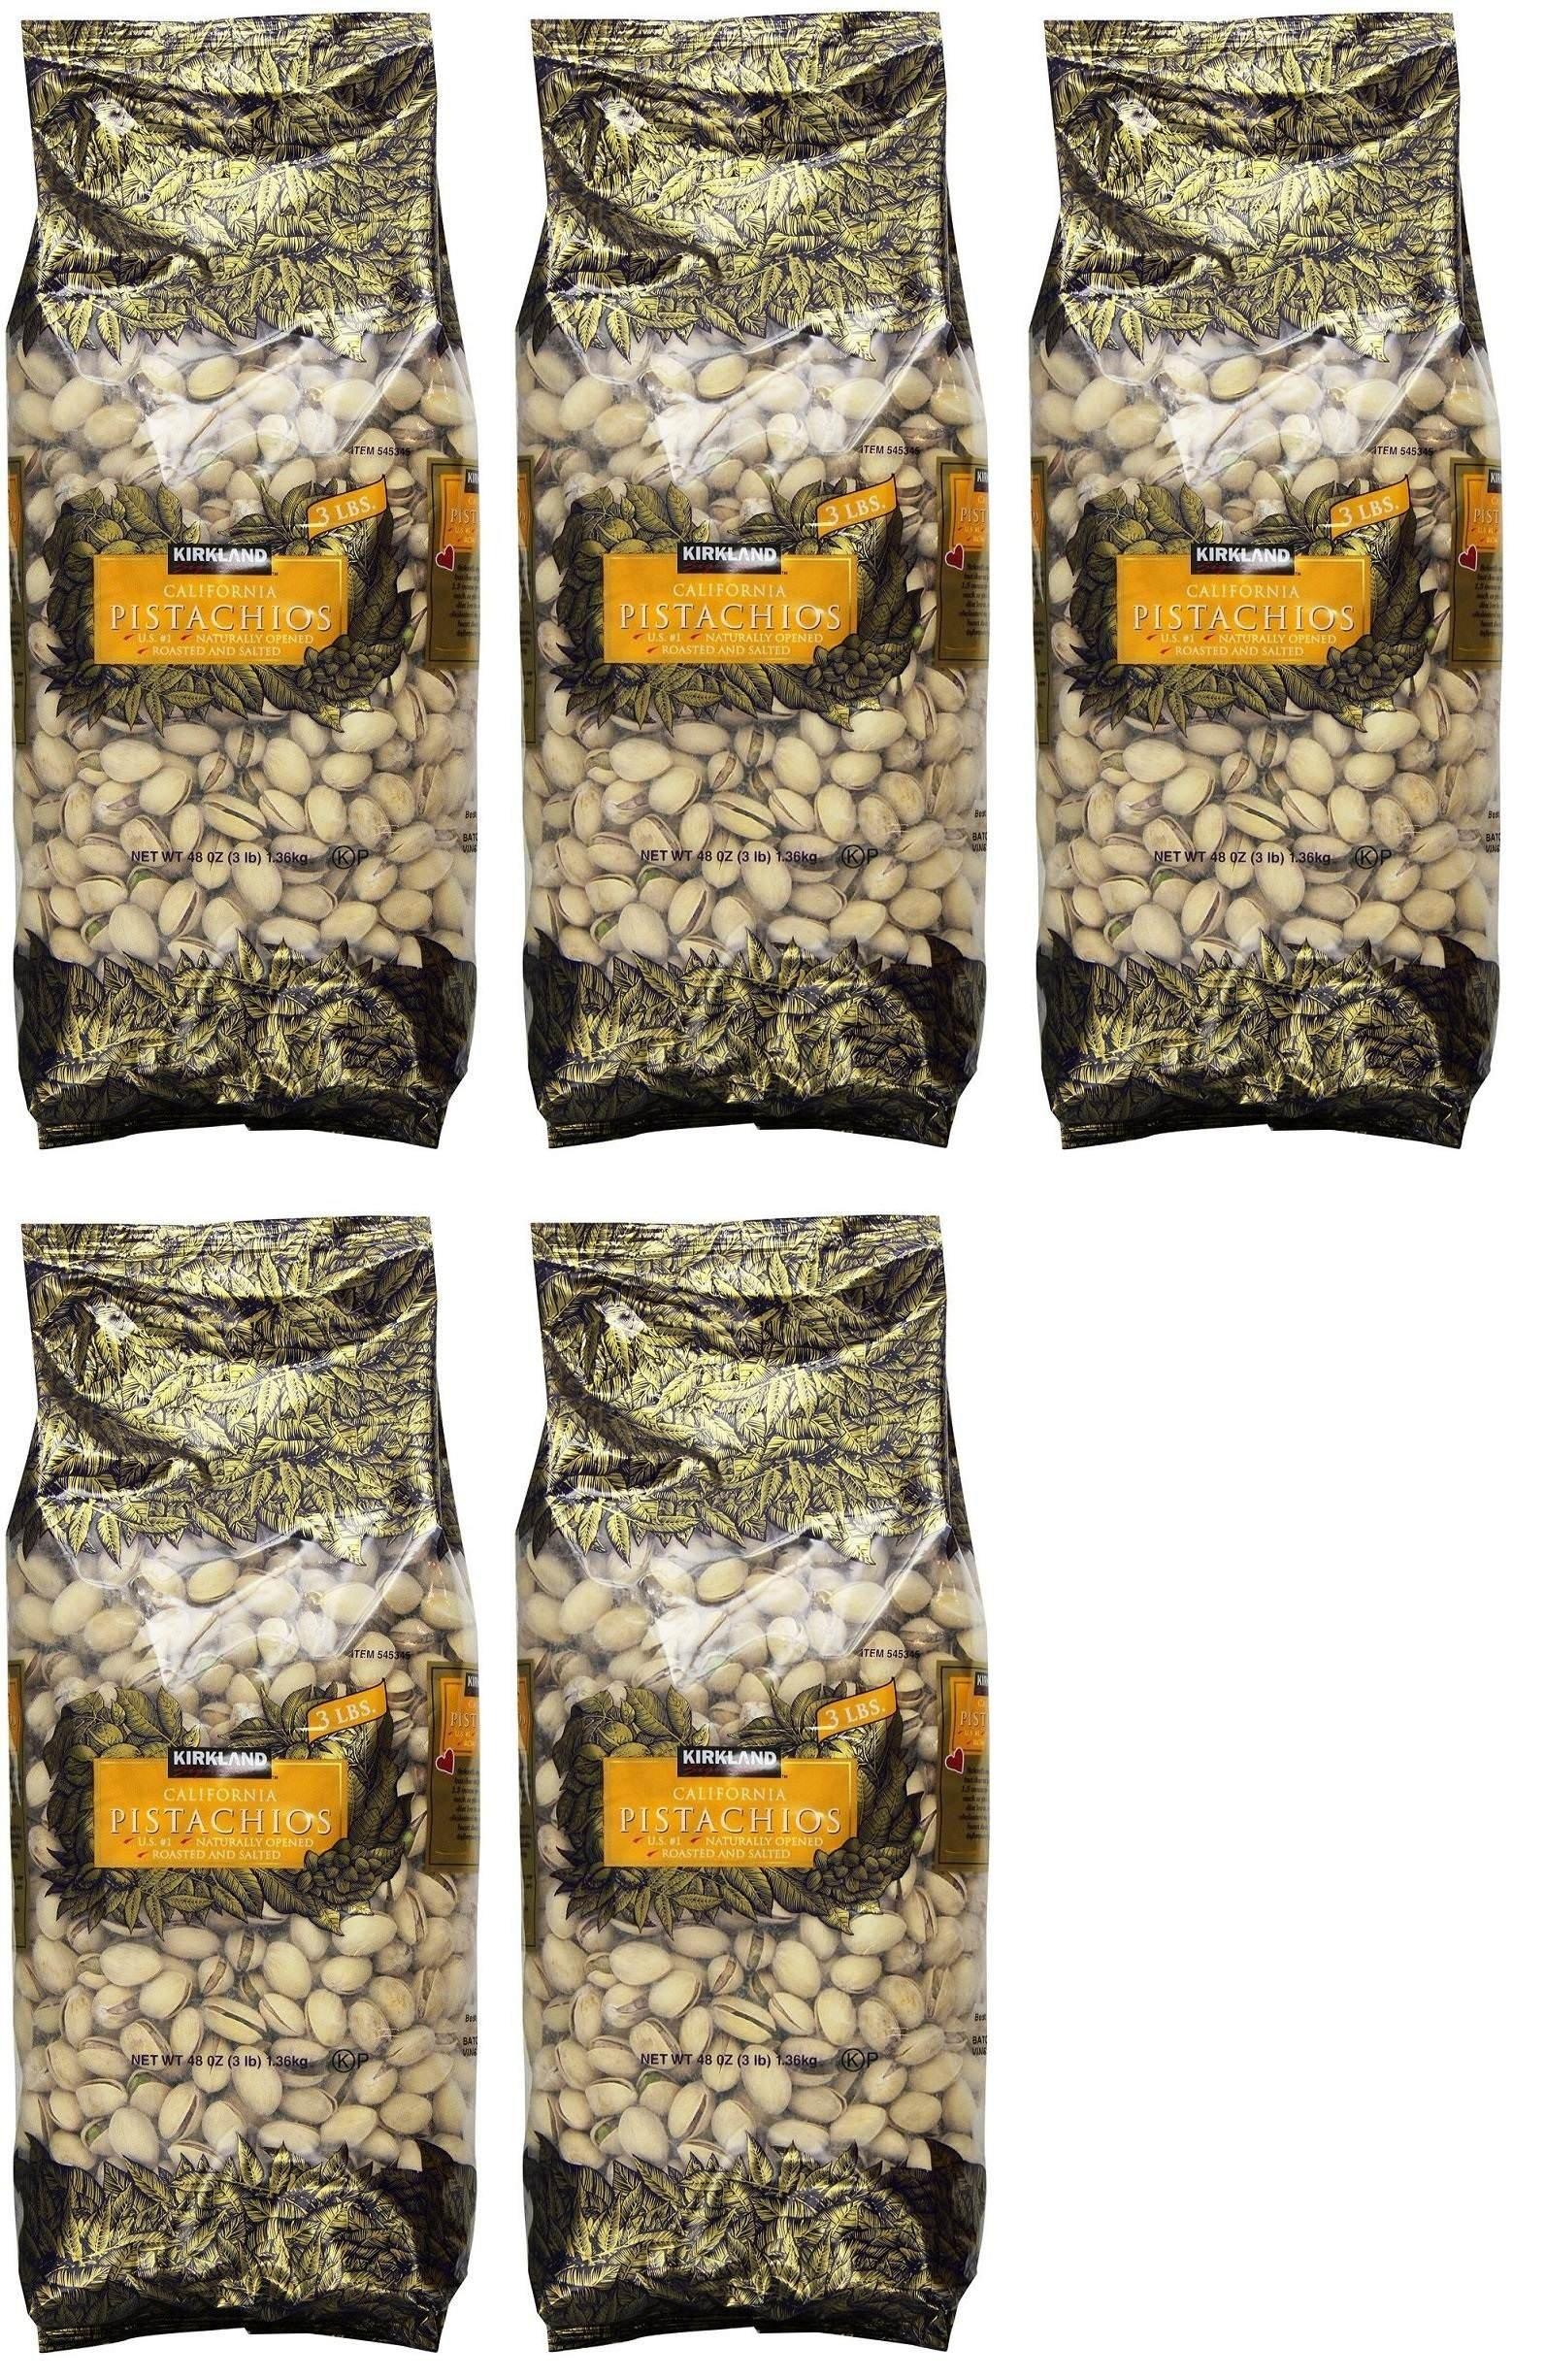 Kirkland Signature In Shell Pistachios, 5 Pack (3 Pound)